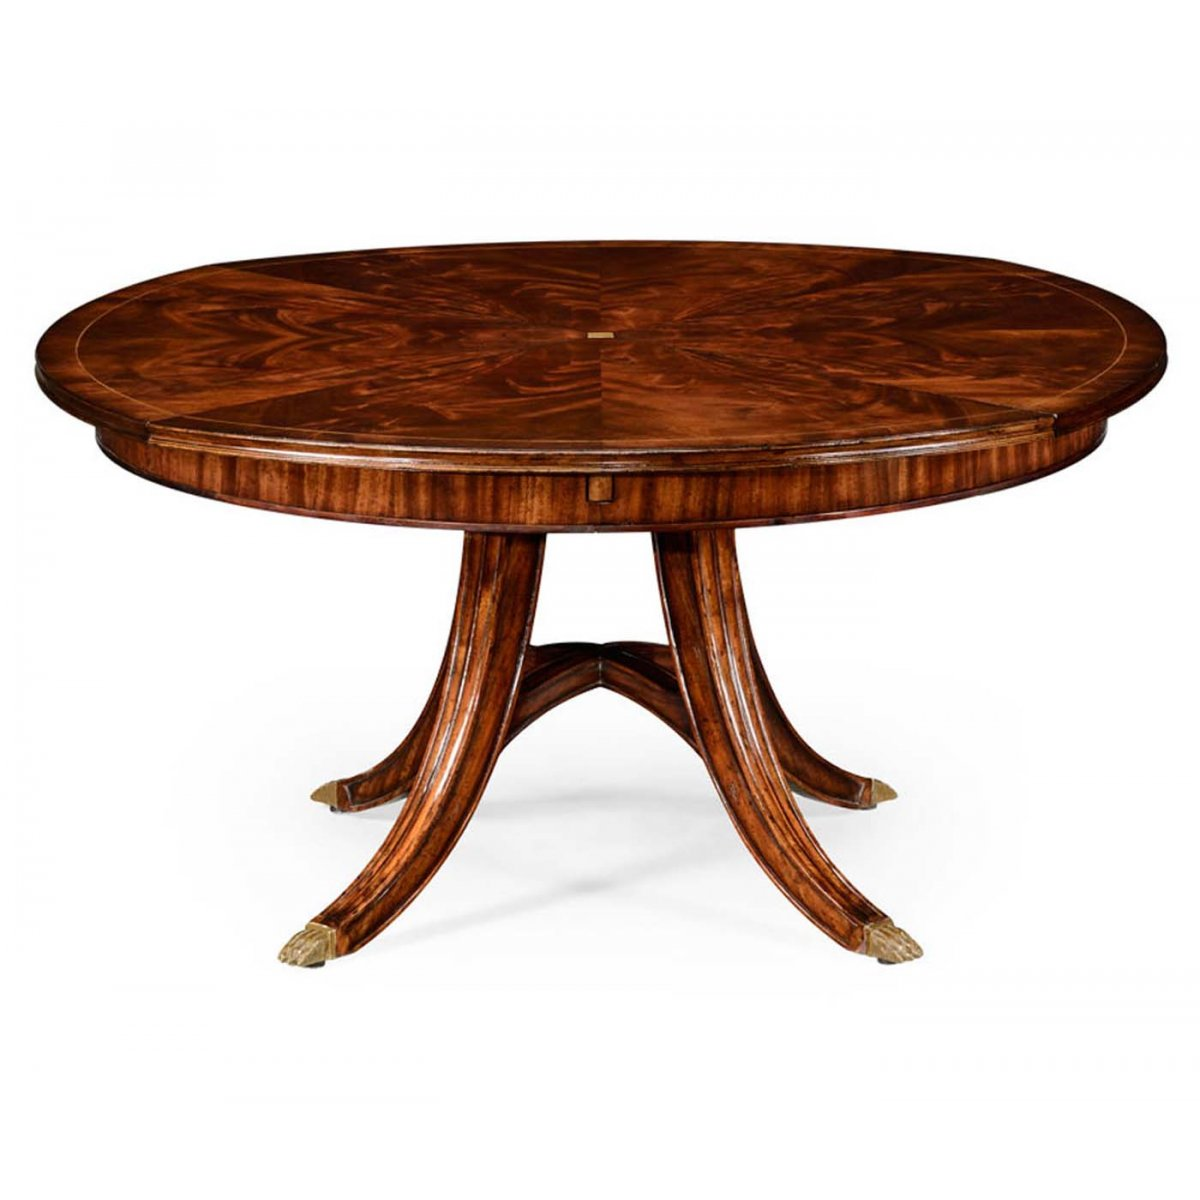 8 seater round dining table and chairs 2 x 4 adirondack chair 10 extending swanky interiors